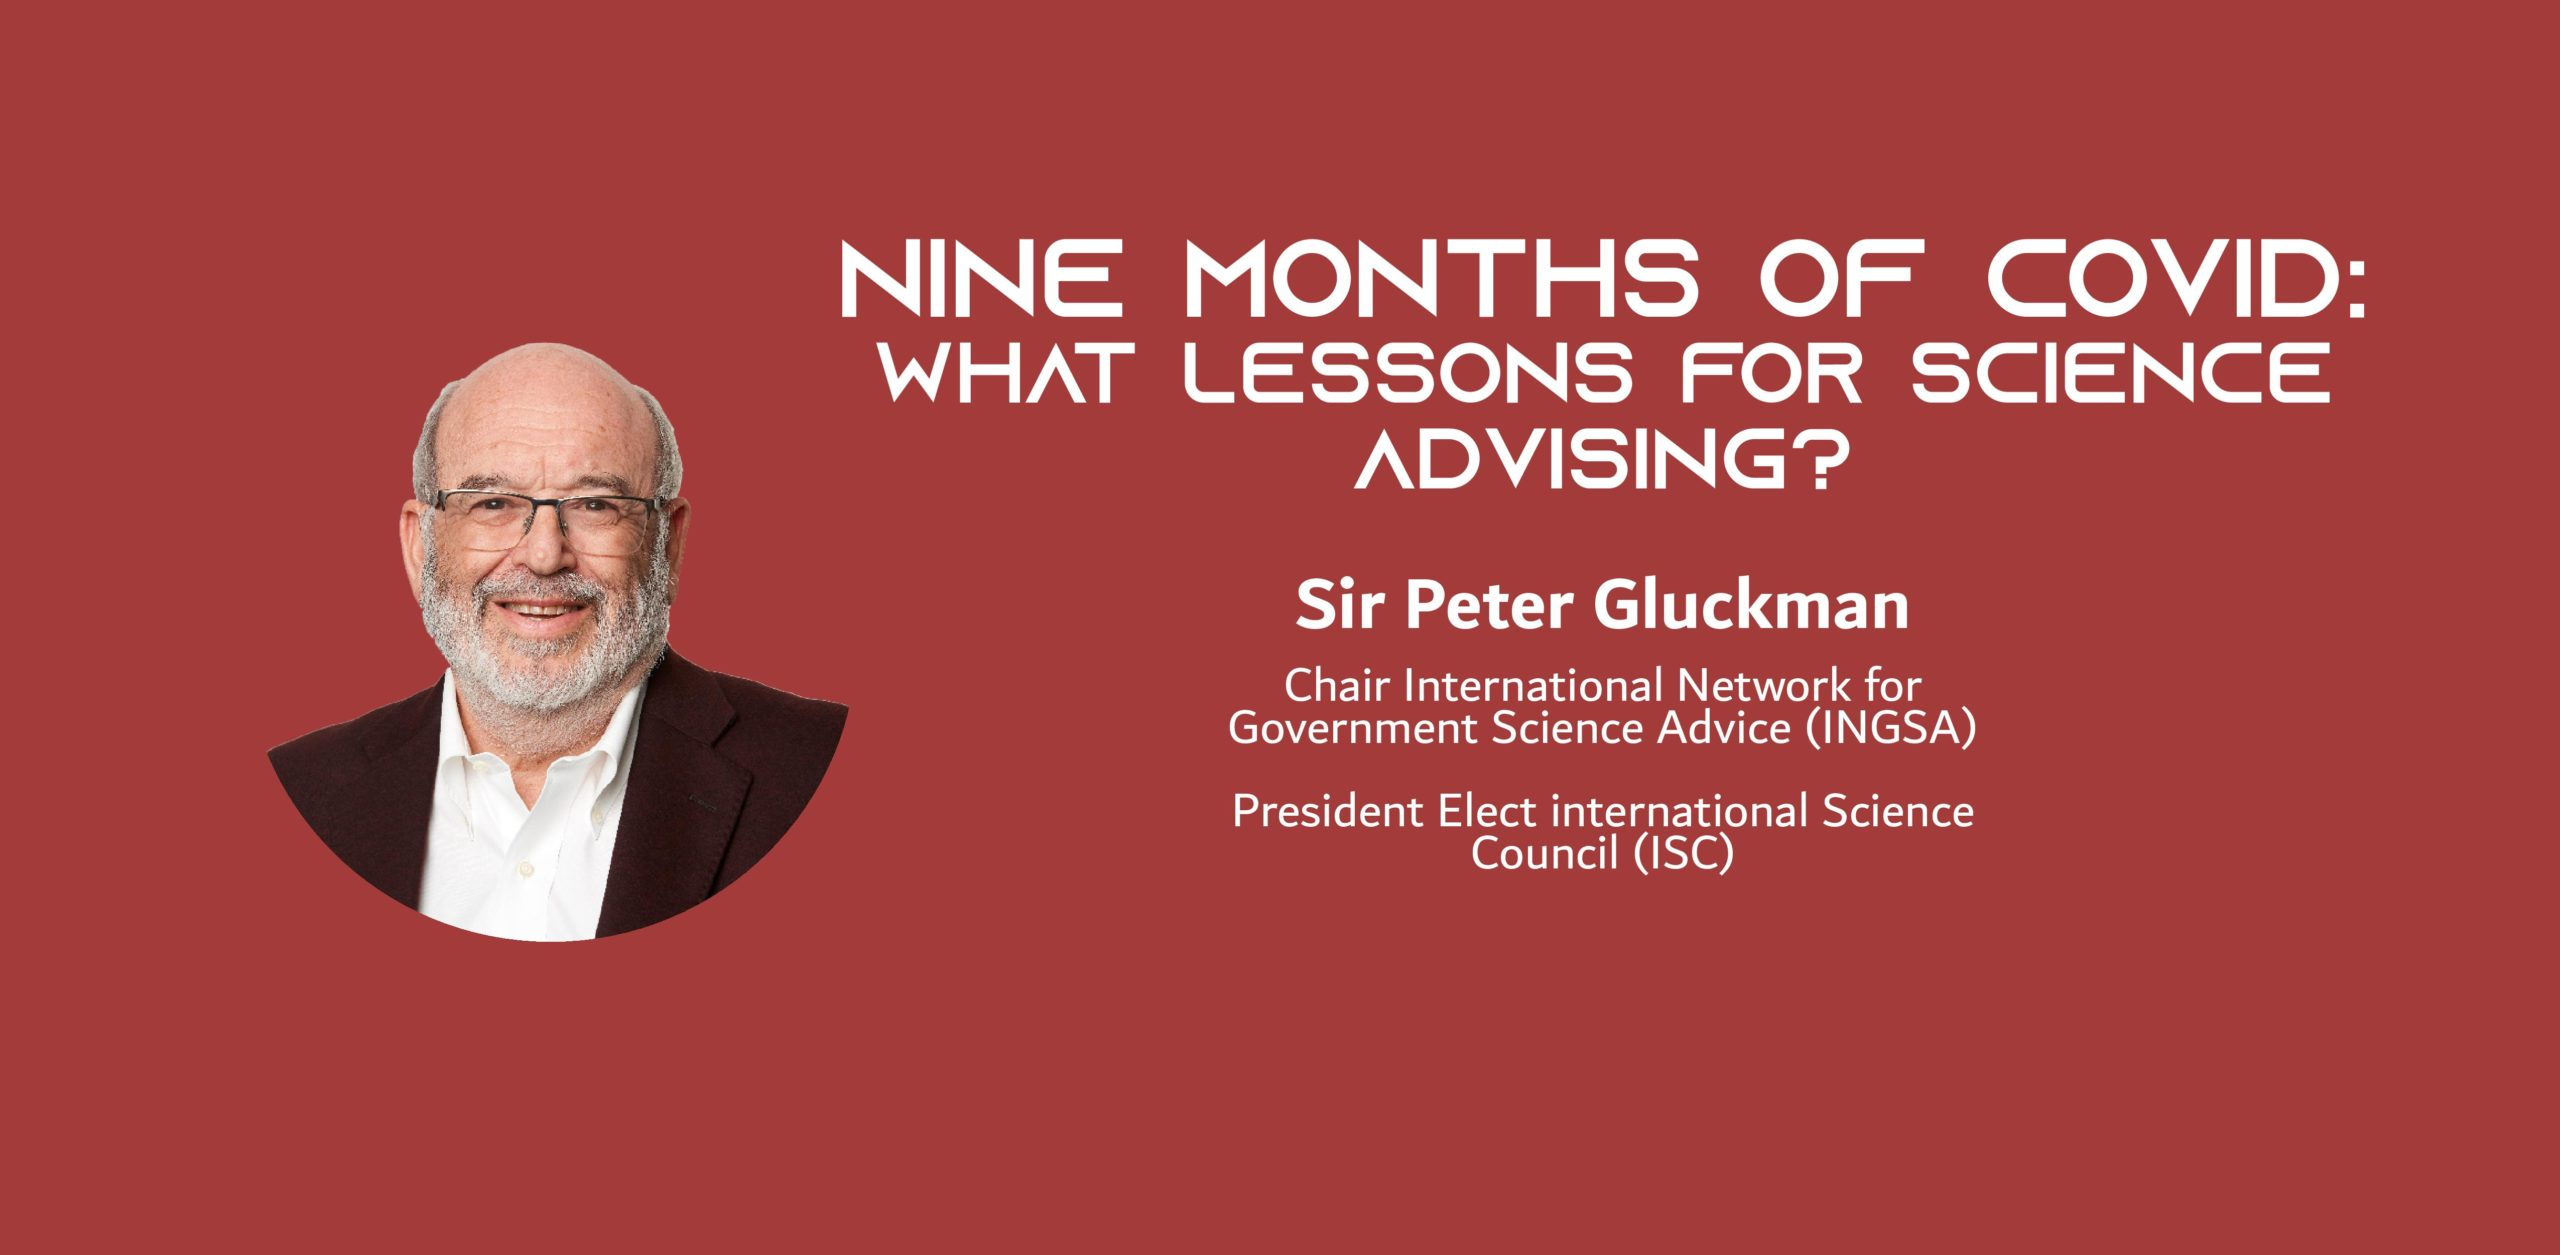 Image of a white man on a red background with the text: Nine months of COVID – what lessons for science advising? Sir Peter Gluckman Chair International Network for Government Science Advice (INGSA) President Elect international Science Council (ISC)